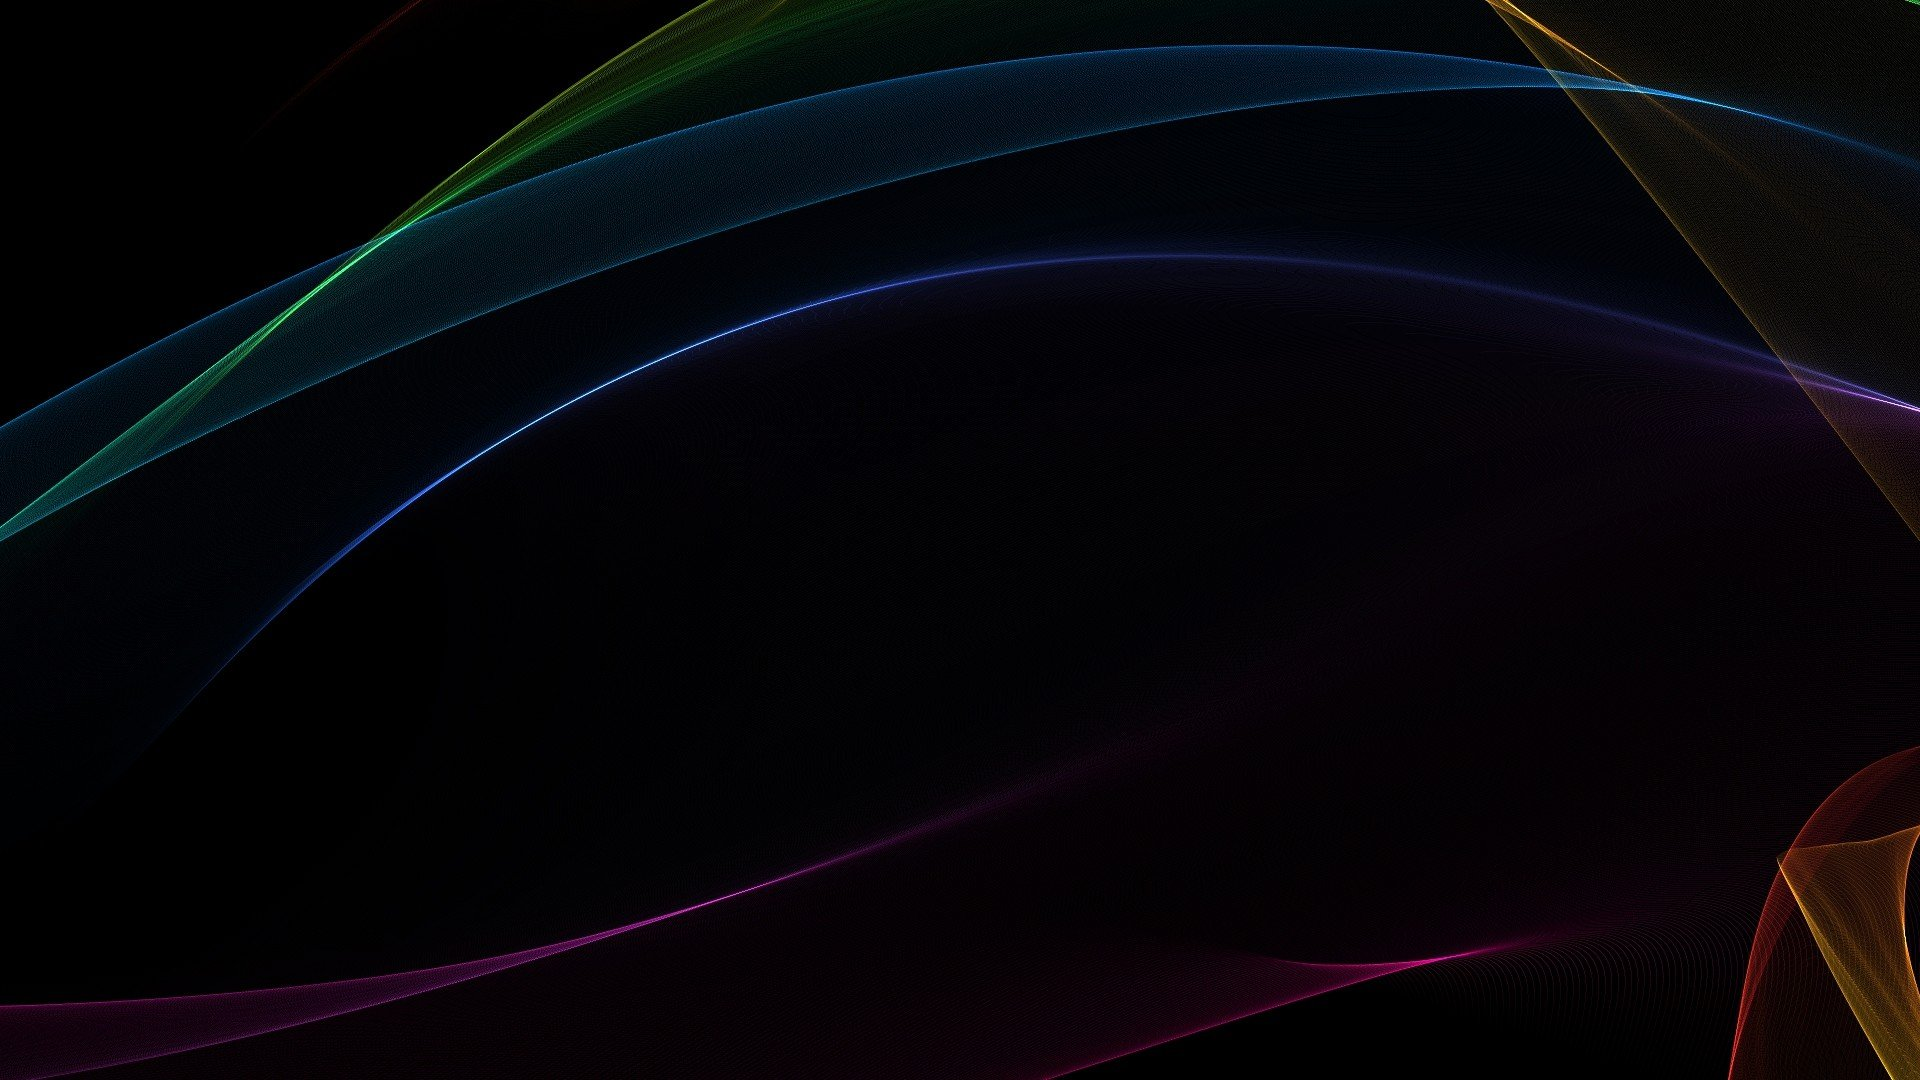 abstract, Black, Minimalistic, Waves, Gradient Wallpapers HD / Desktop and Mobile Backgrounds